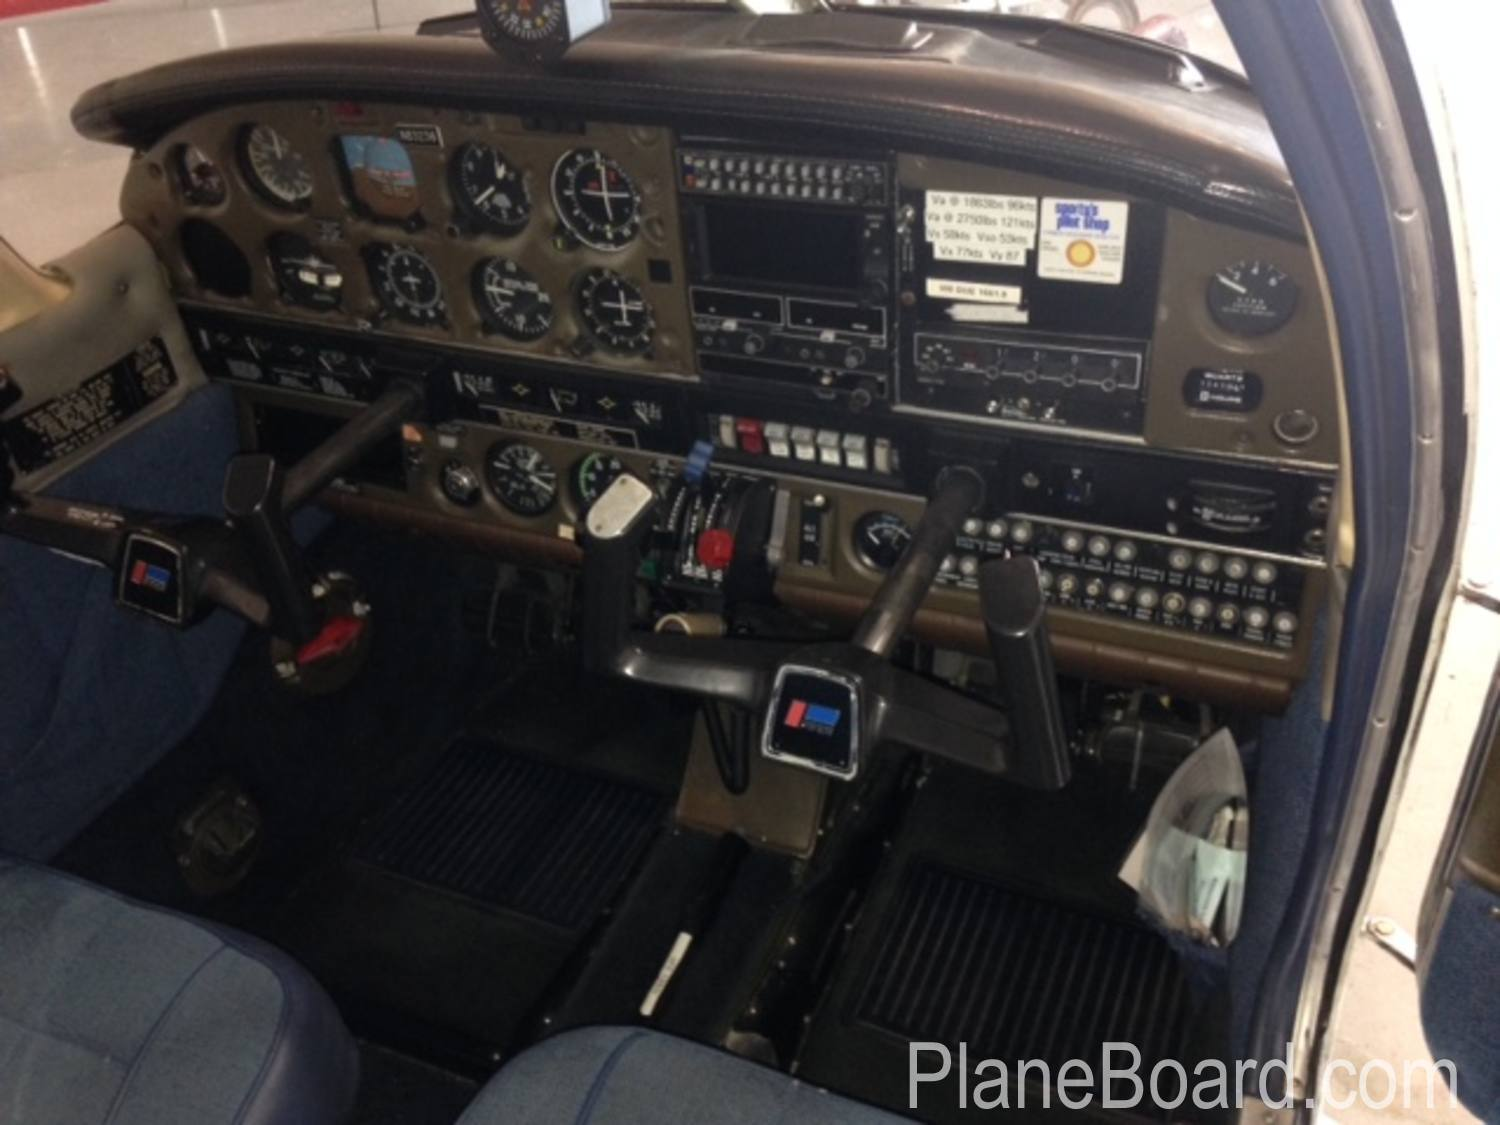 1981 Piper Arrow IV interior 8